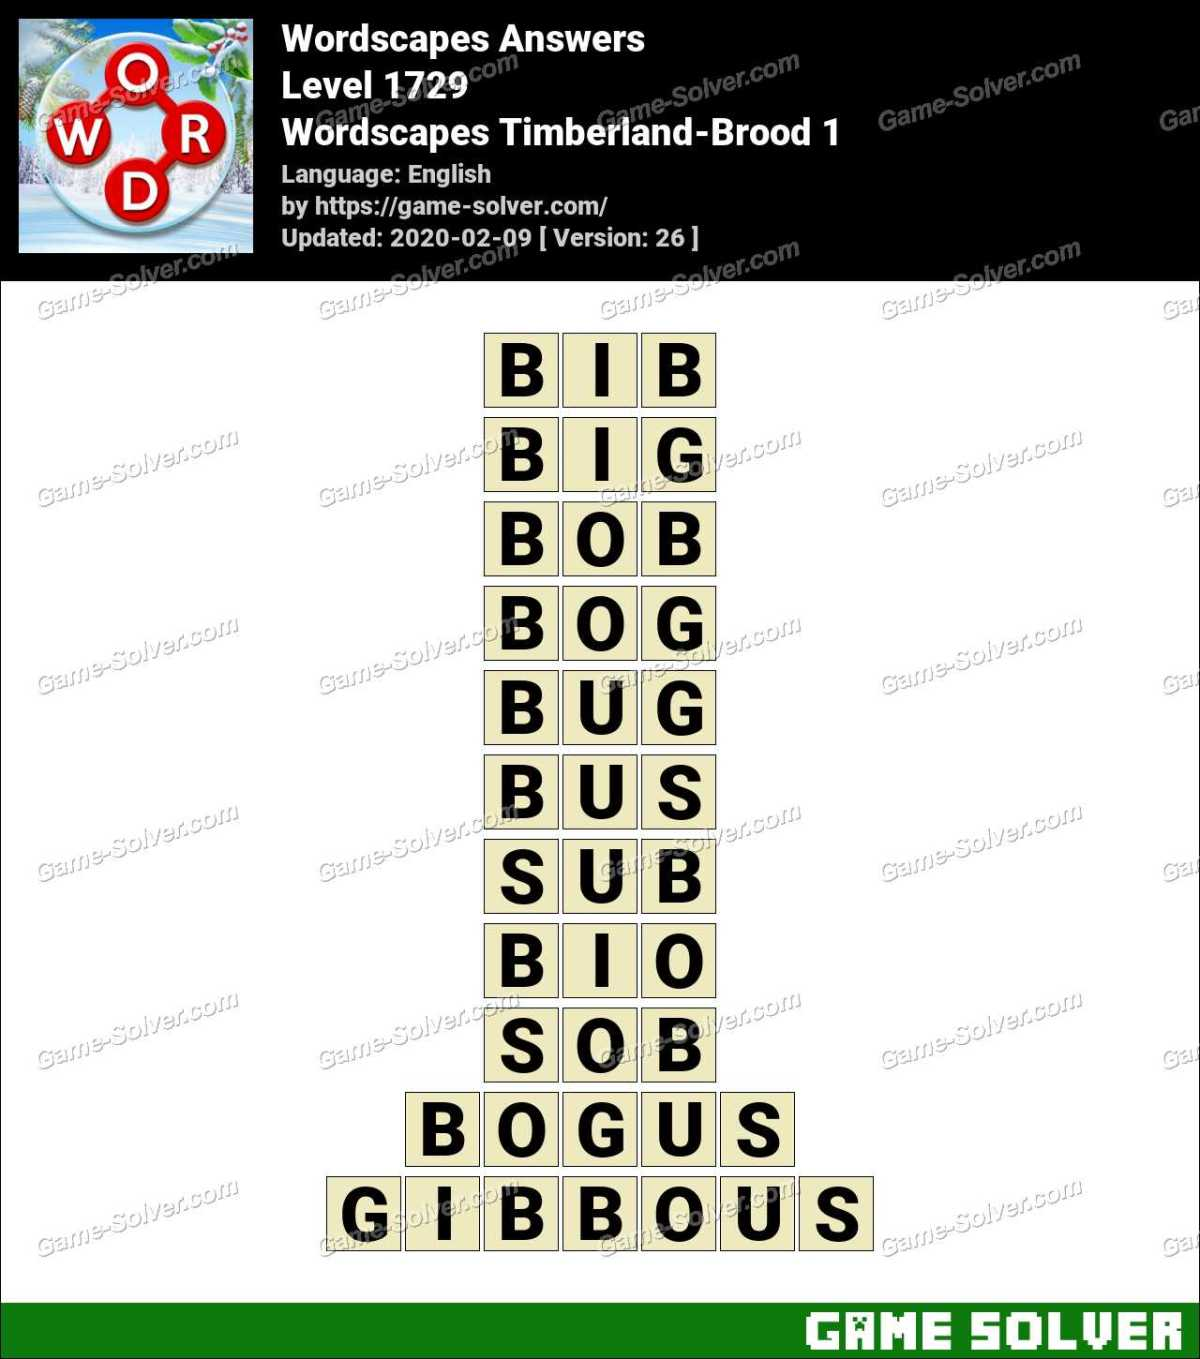 Wordscapes Timberland-Brood 1 Answers